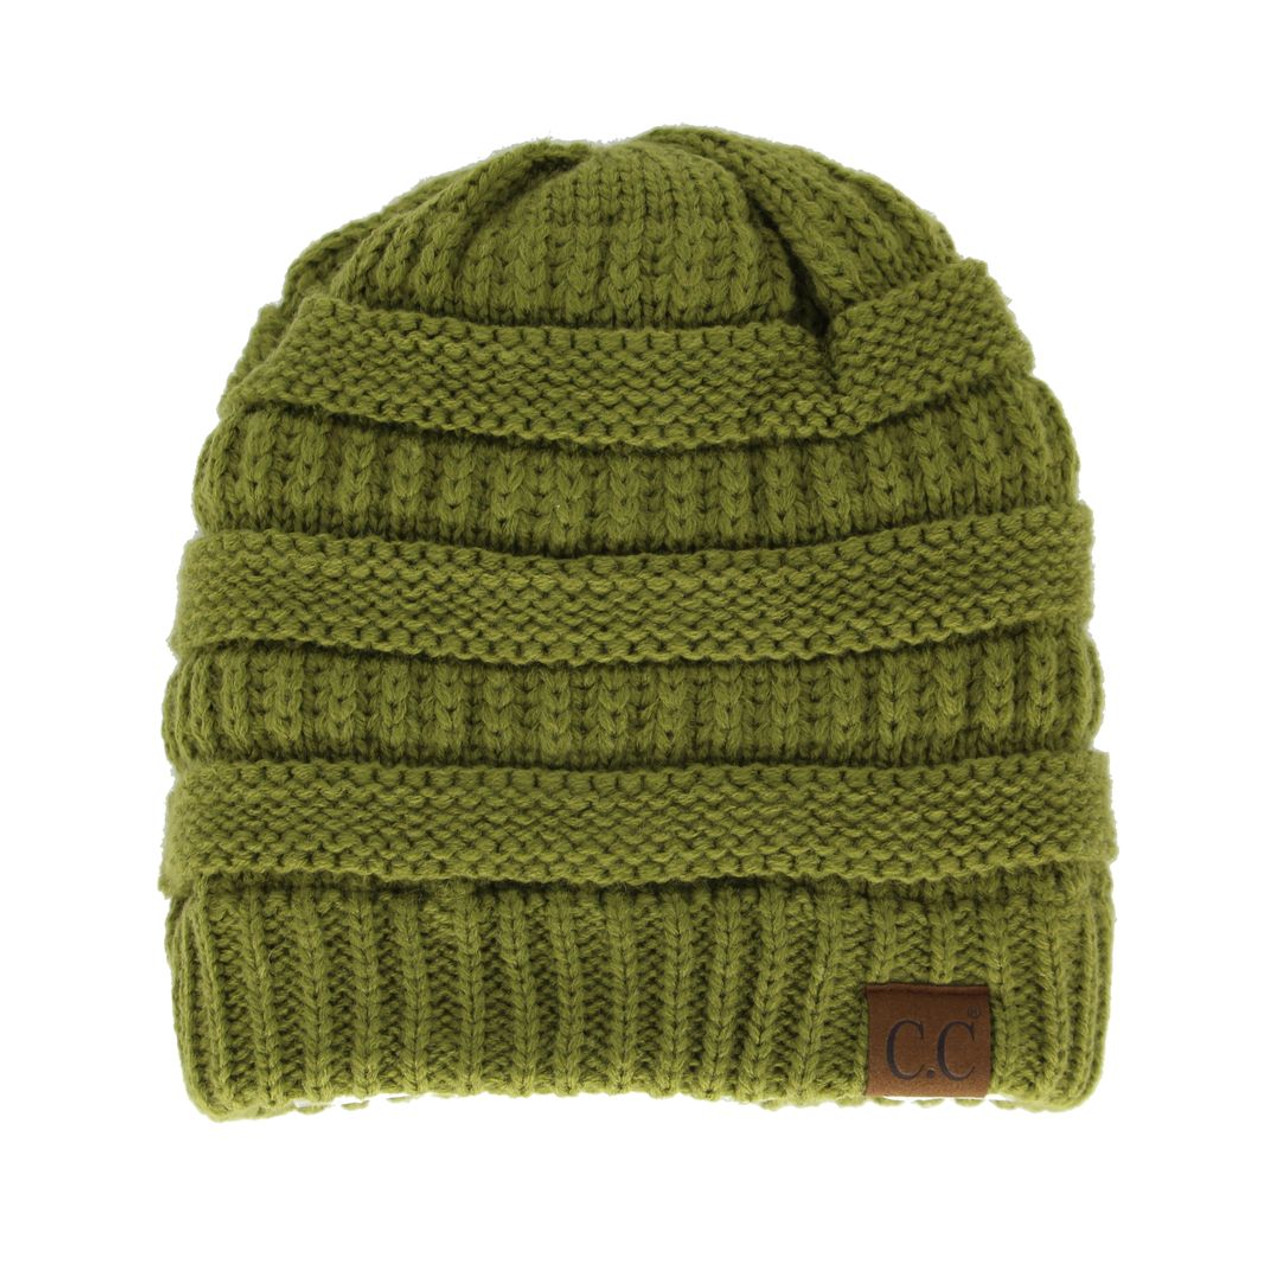 7d2475adb4e5ec Original C.C Beanie - Olive - Trendy Threads Inc